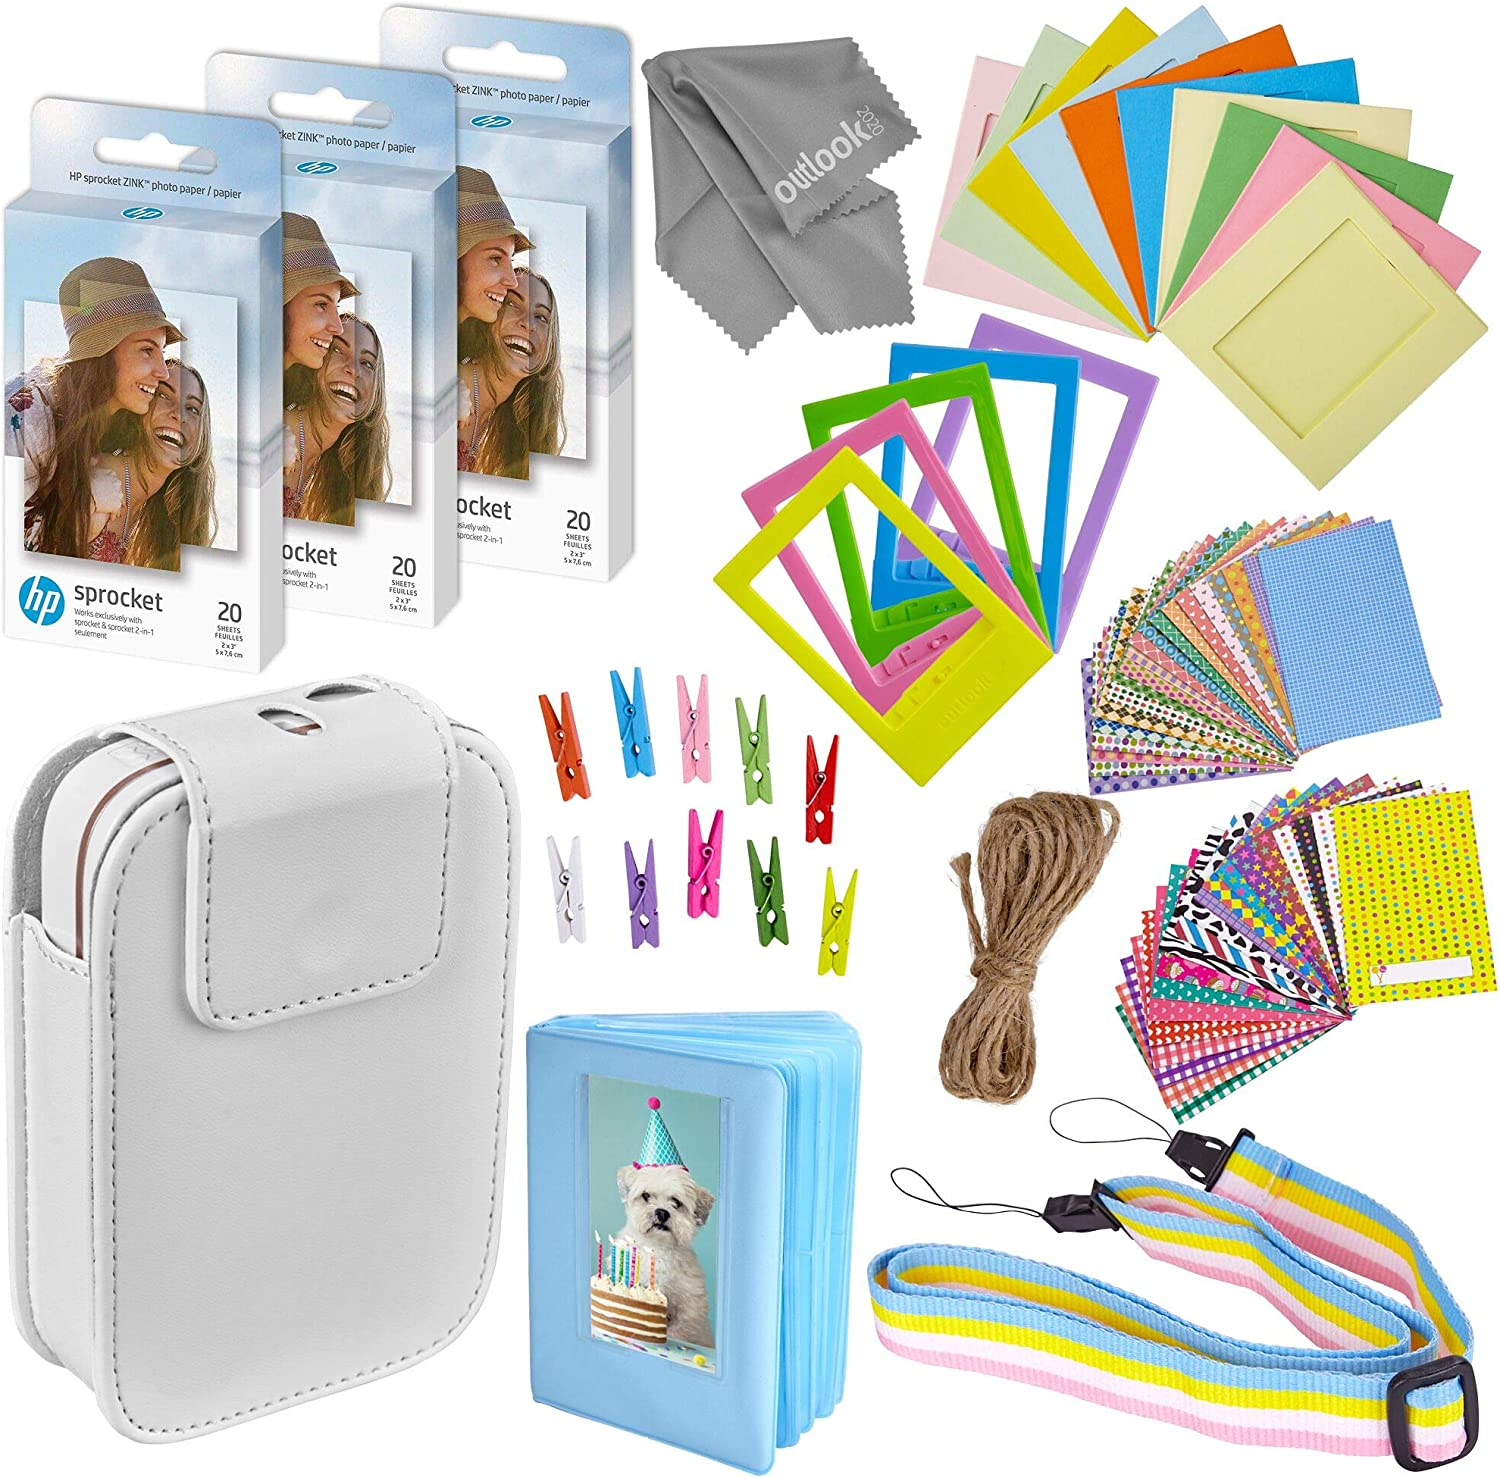 Zink Photo Paper and Frames Kit – 60 Pack - Sticker Paper for HP Sprocket Portable Printer - Sticky 2x3 Sheets for Printing Pocket Size Phone Pictures - With Photo Album, Case, Frames, Clips